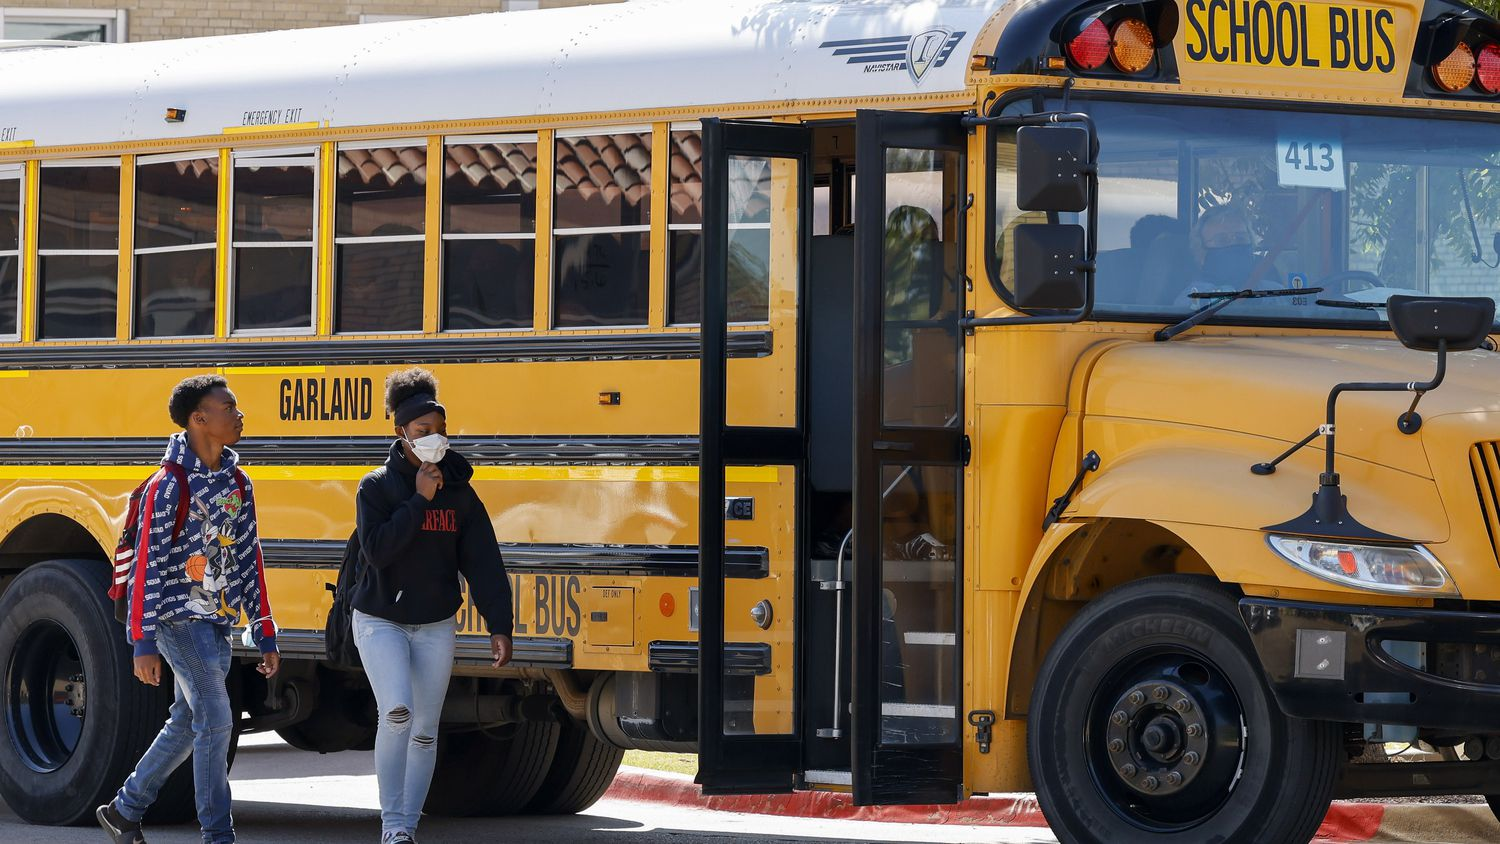 Students boarded a Garland ISD bus outside Garland High School on Oct. 22, 2021.